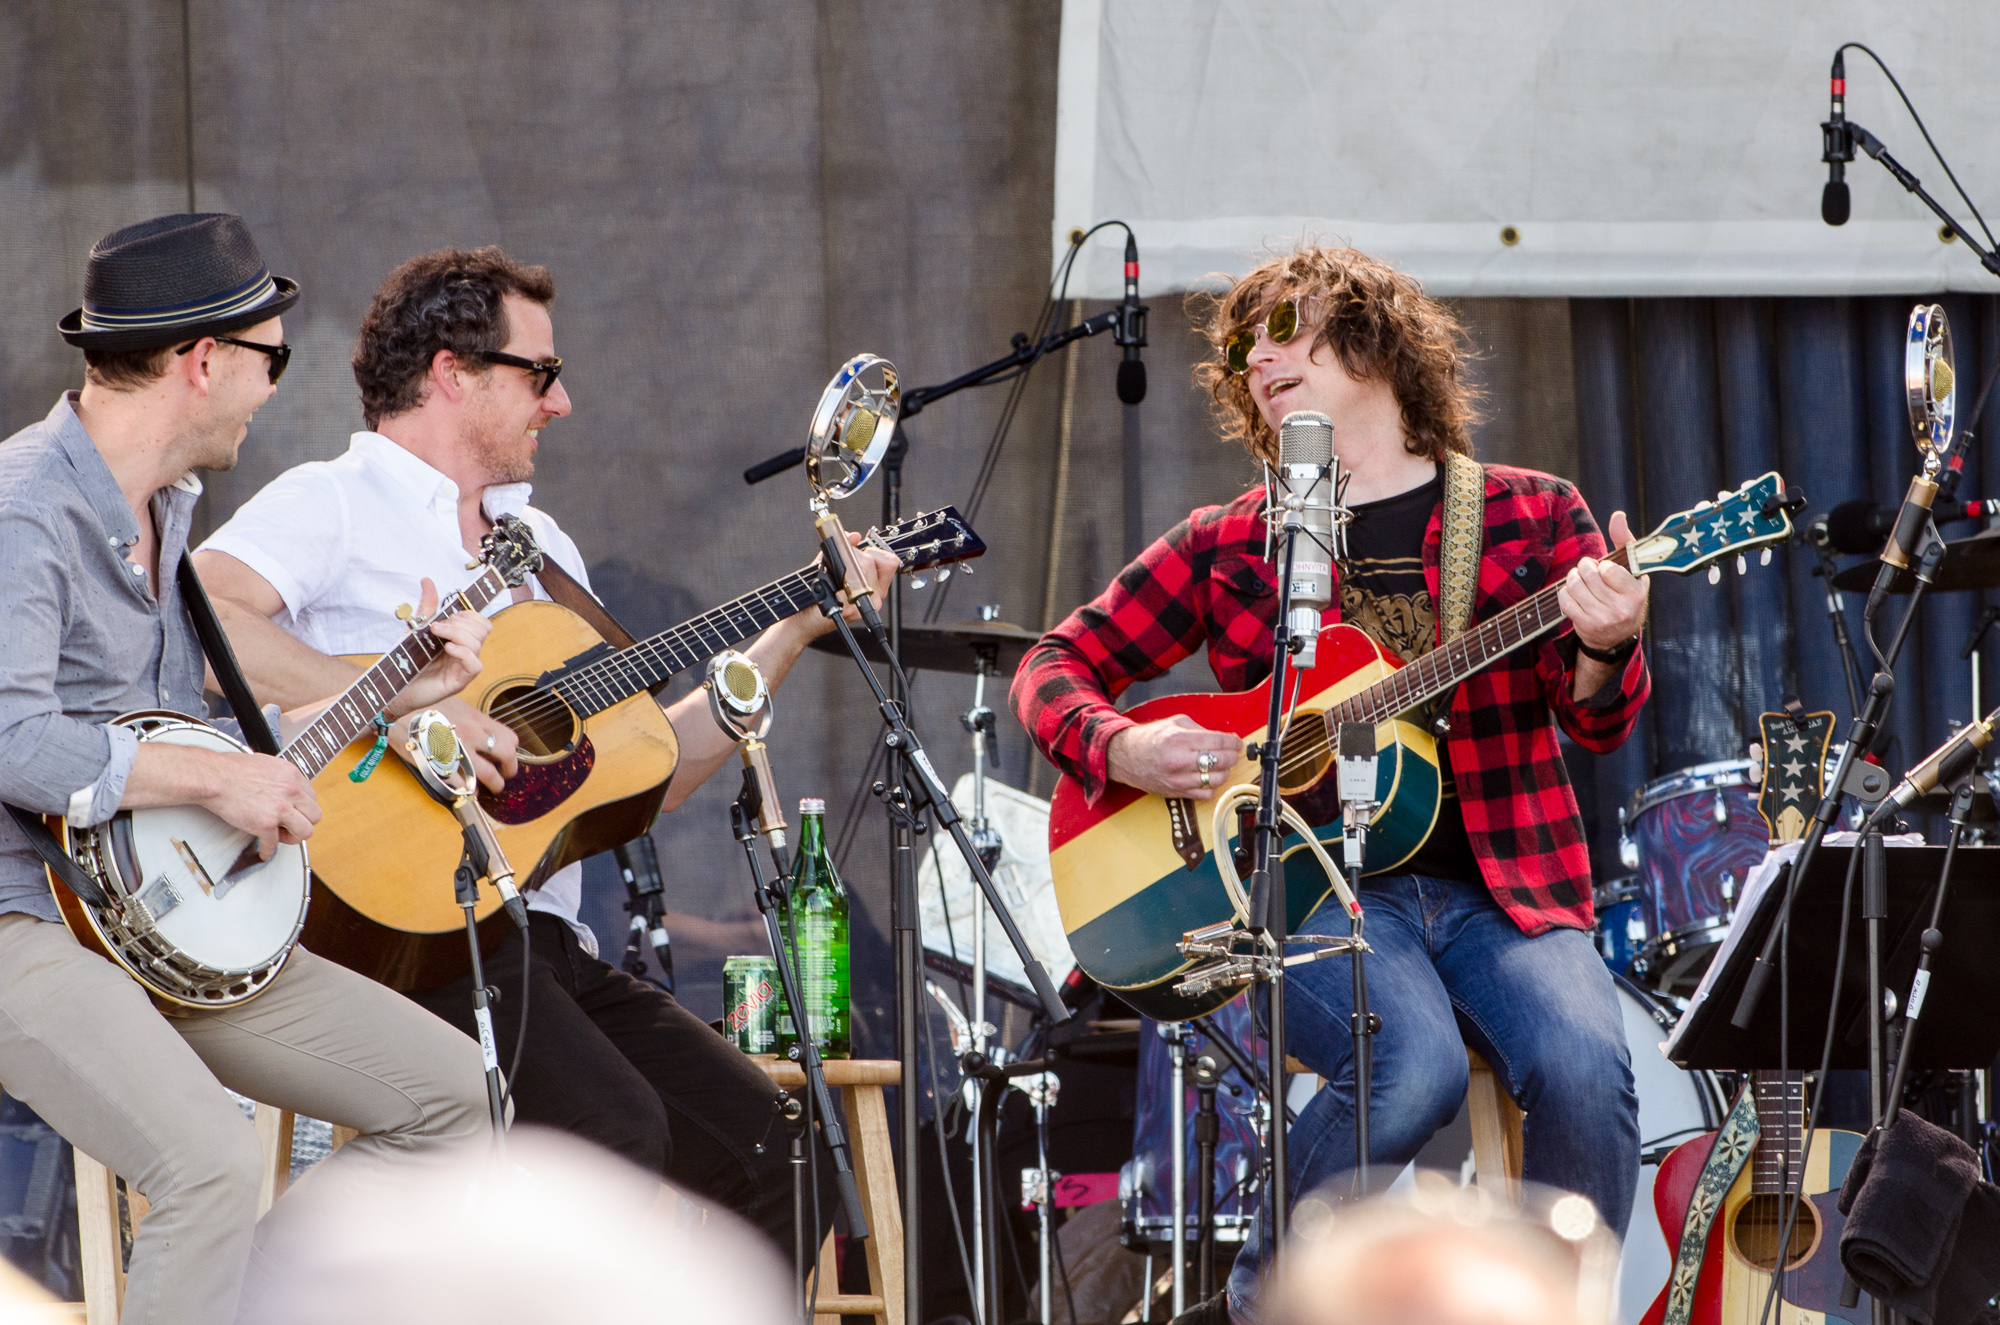 Ryan Adams with The Infamous Stringdusters featuring Nicki Bluhm // Photo by Ben Kaye